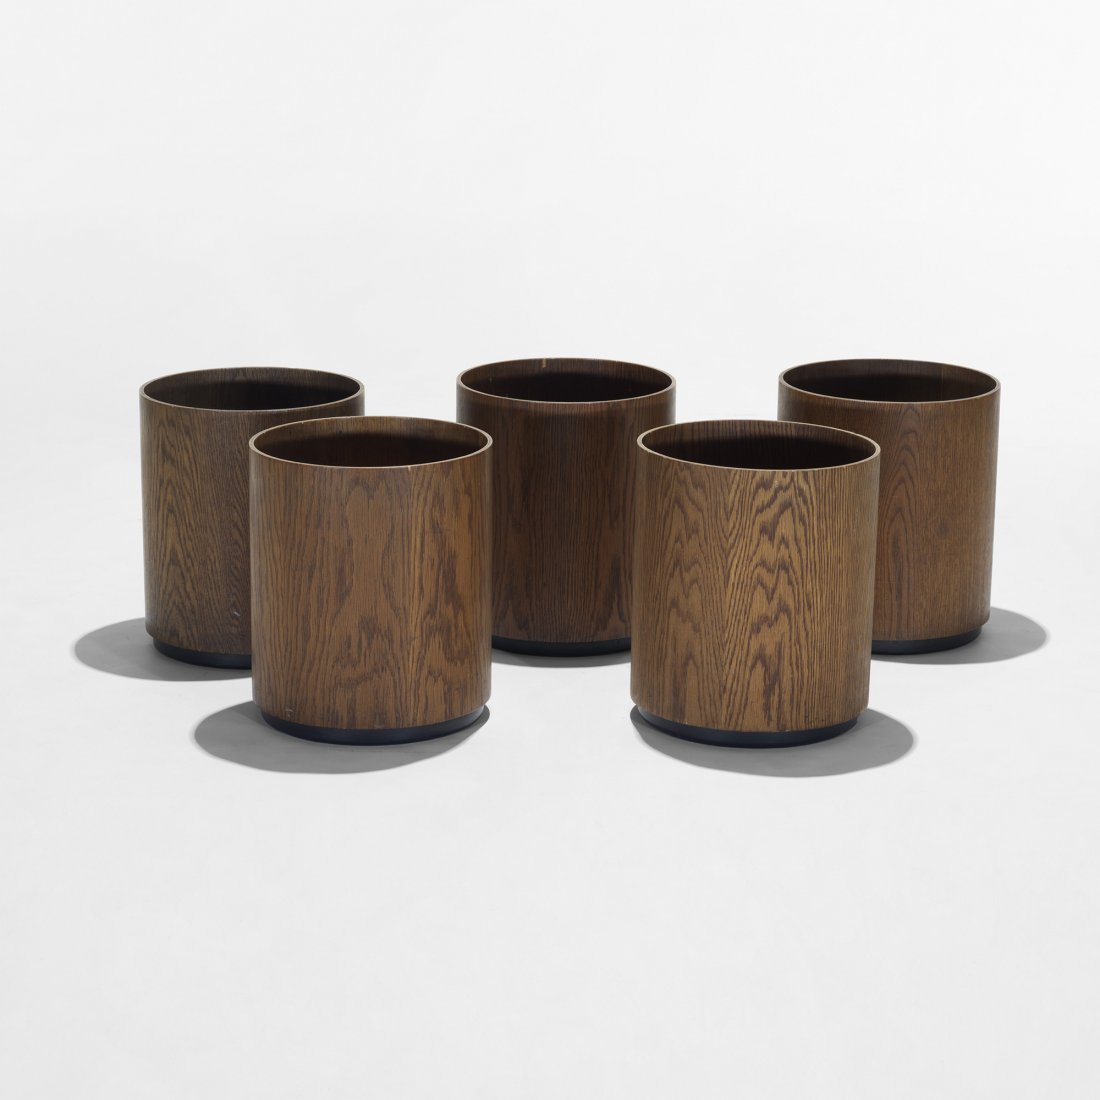 112: Jens Risom wastebaskets, collection of five